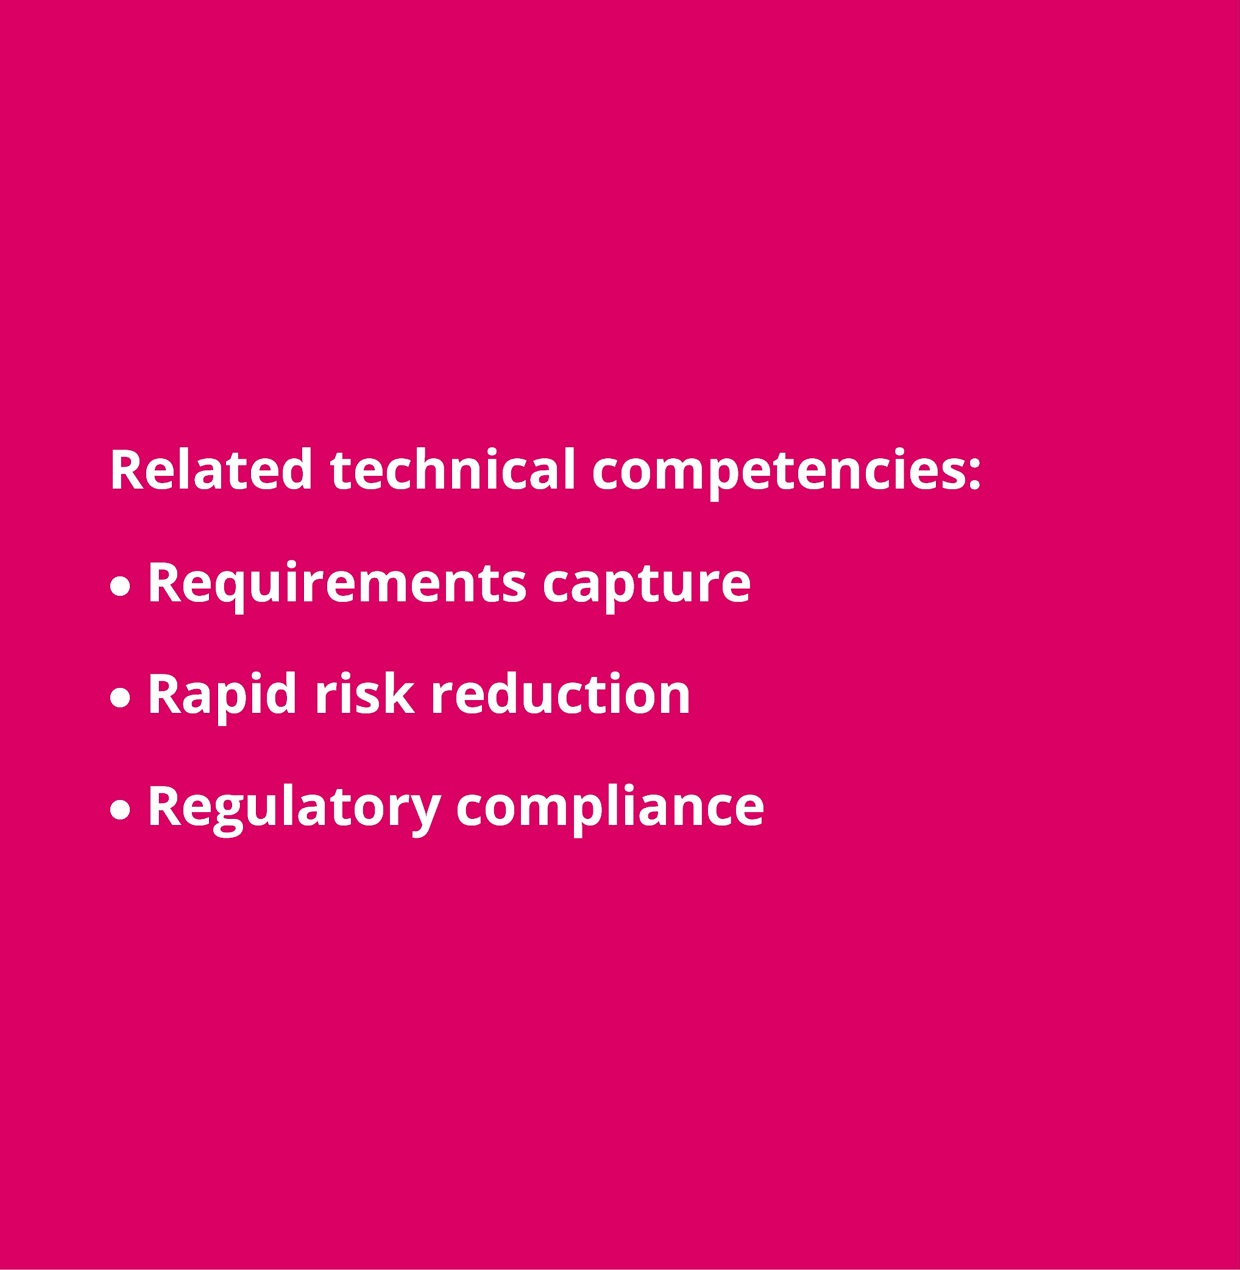 Technical review: requirements capture; rapid risk reduction; regulatory compliance